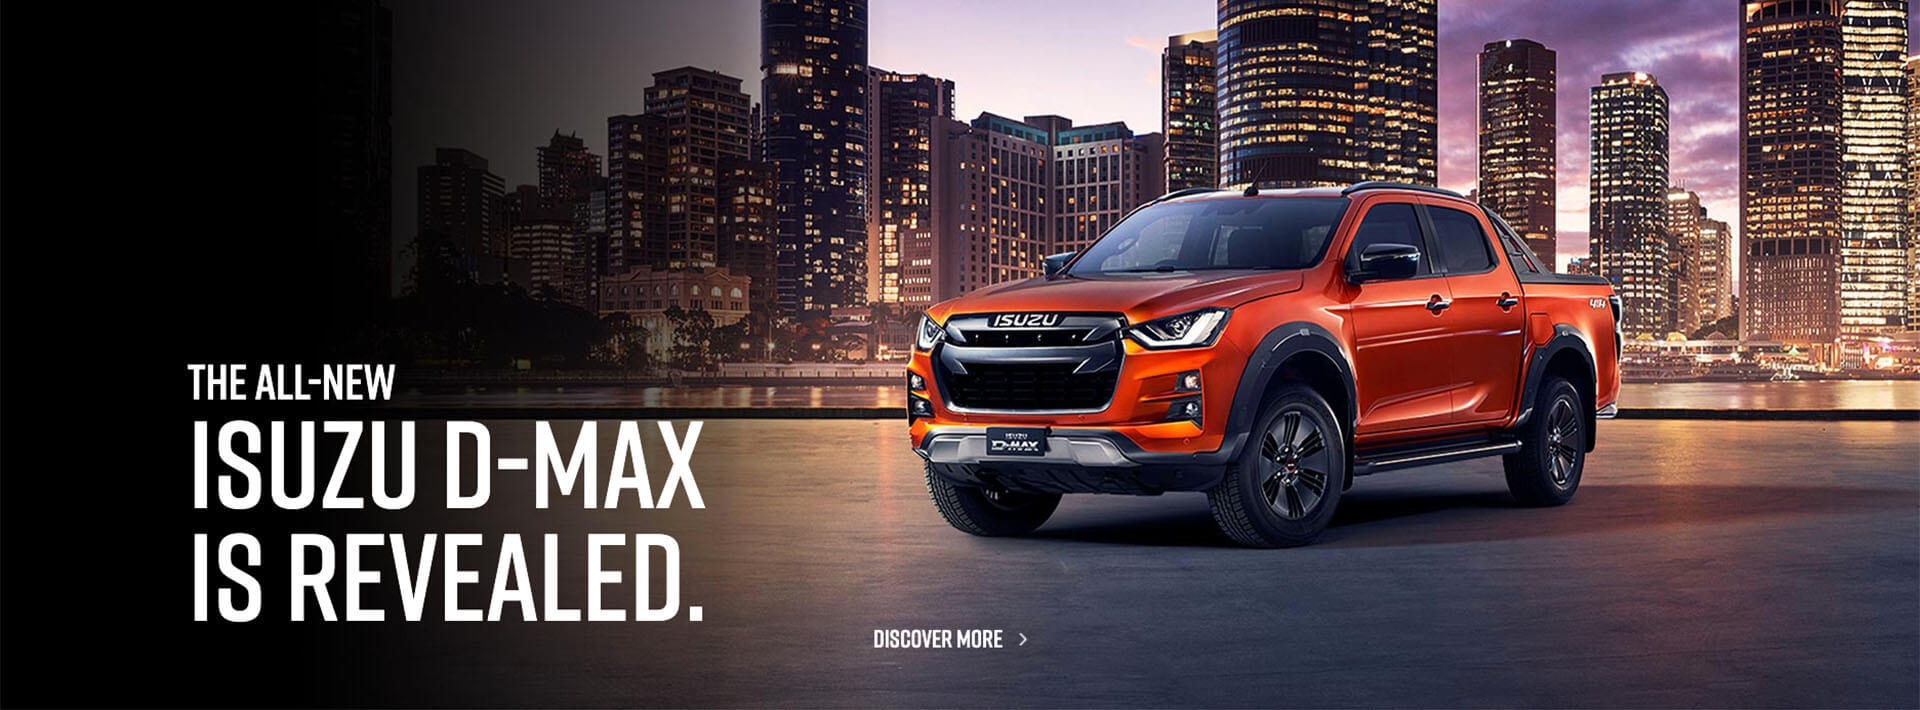 The All-New Isuzu D-MAX is revealed. Register your interest today!